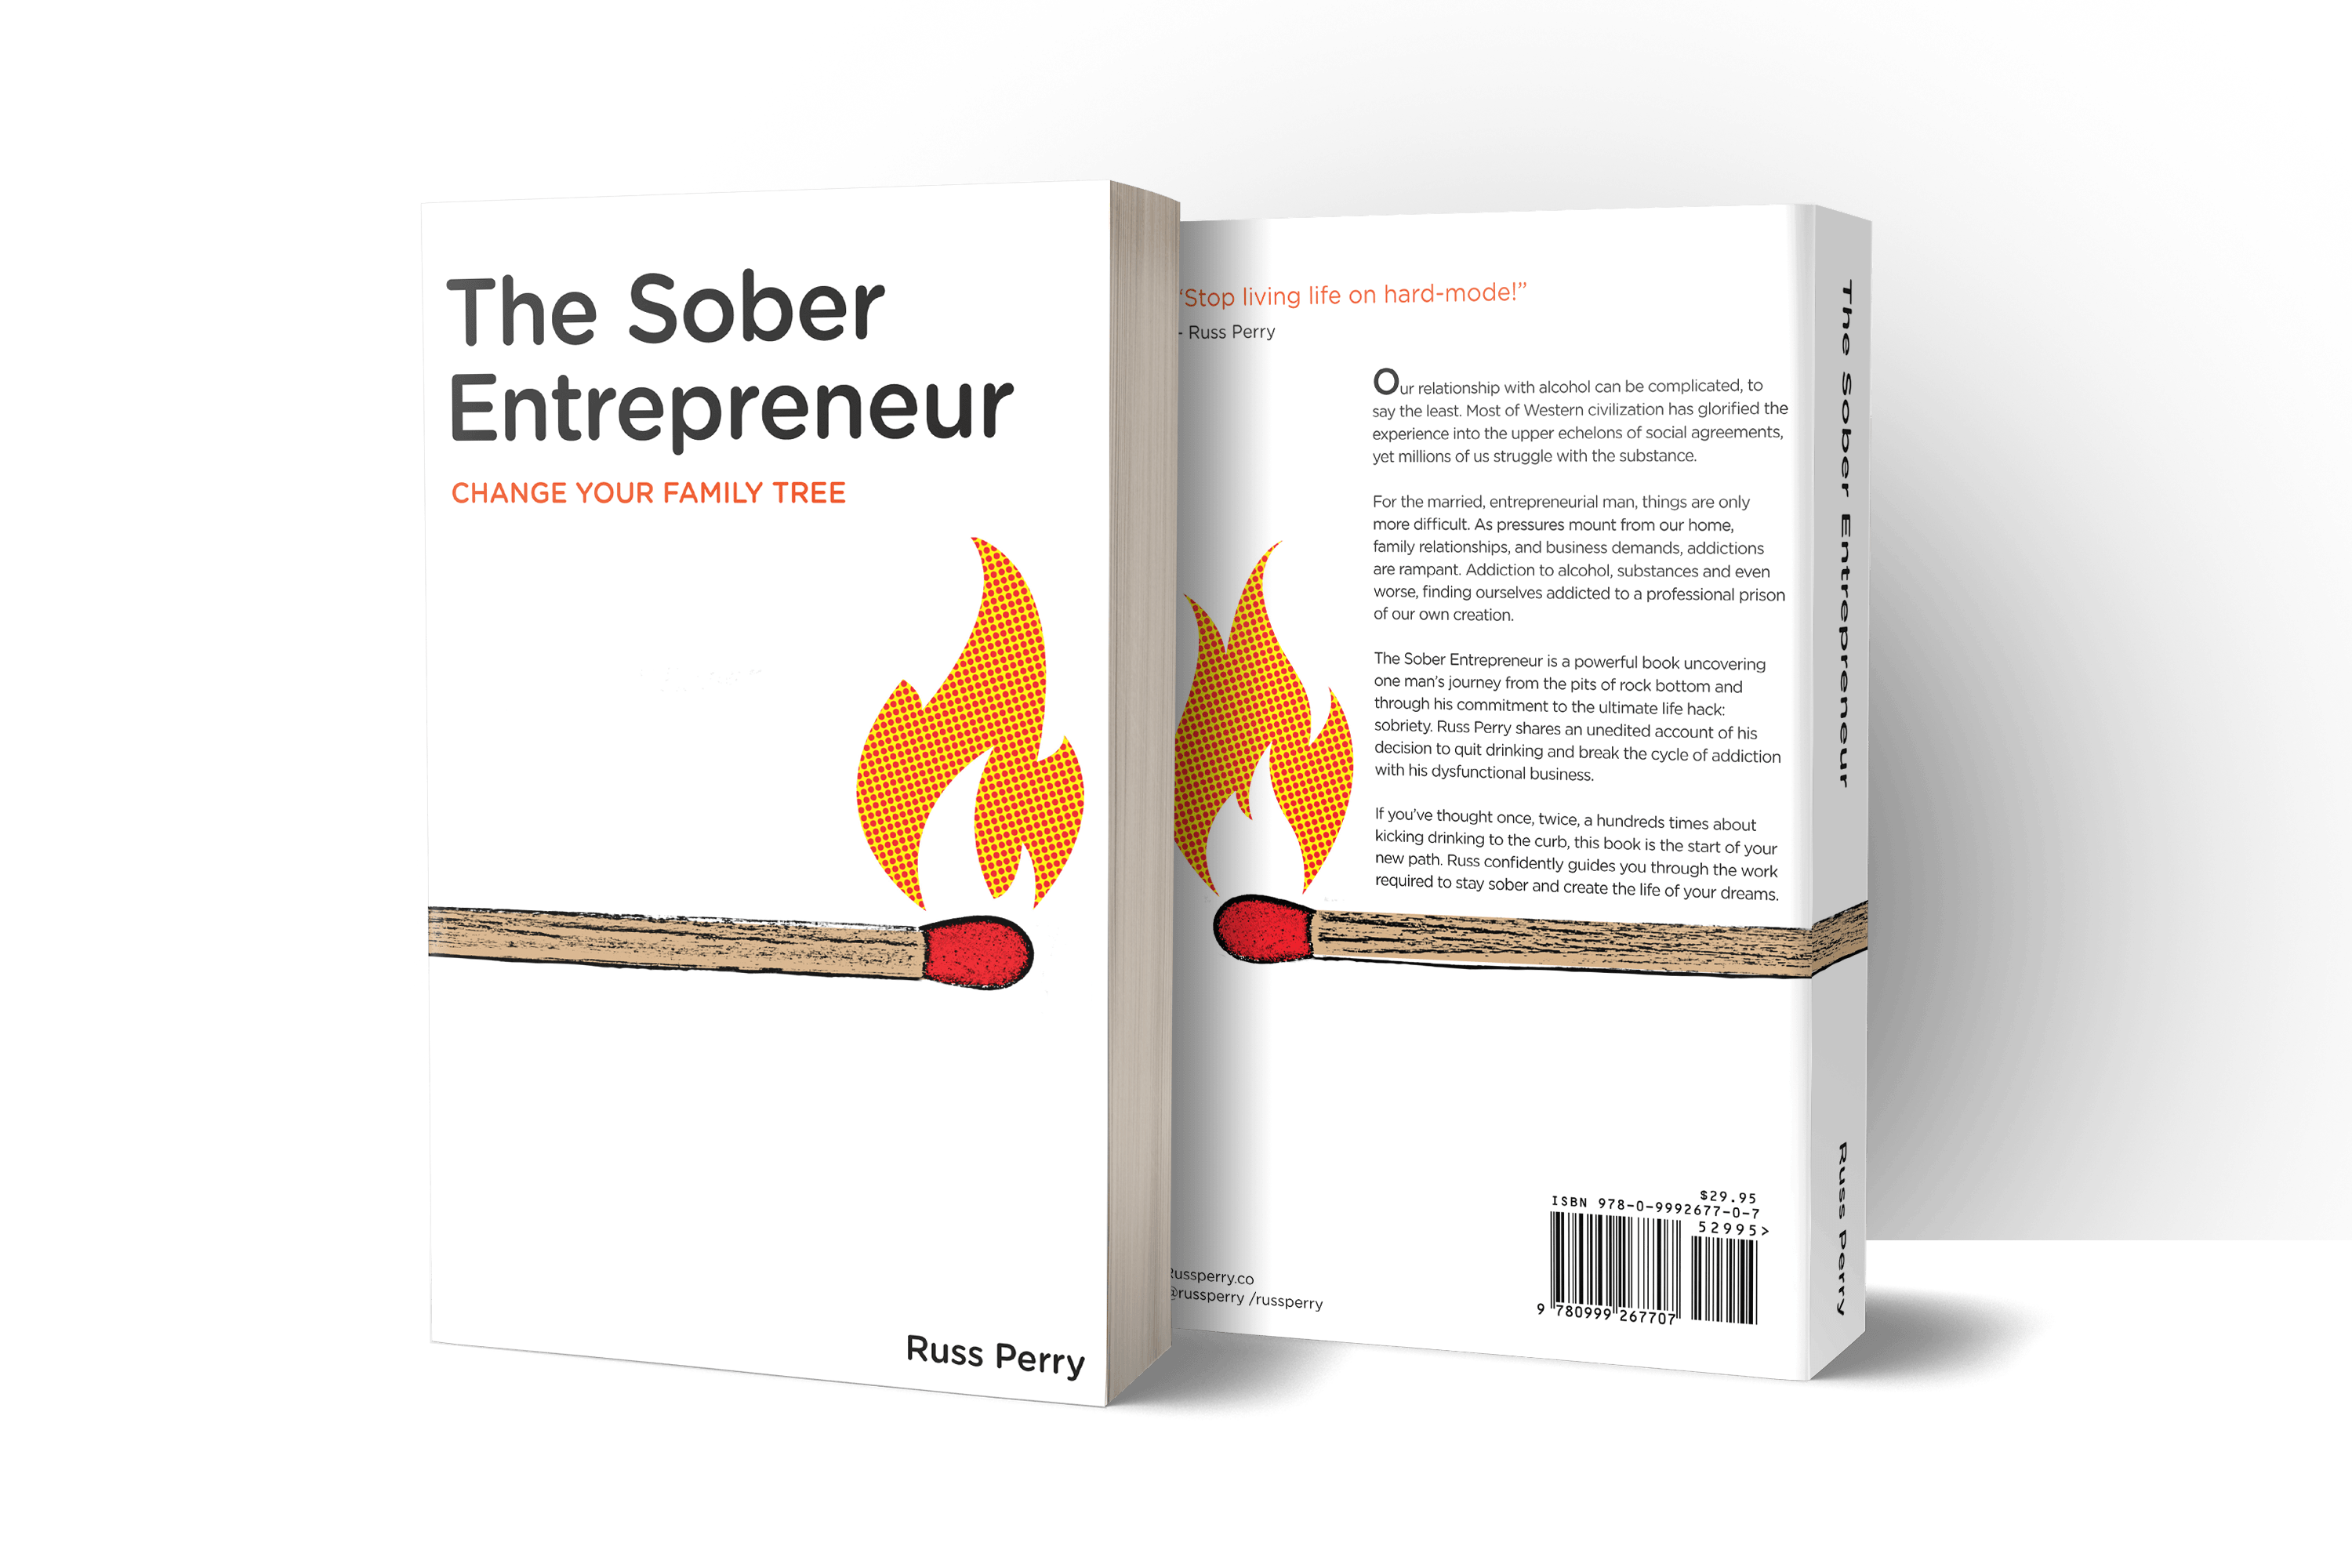 The Sober Entrepreneur